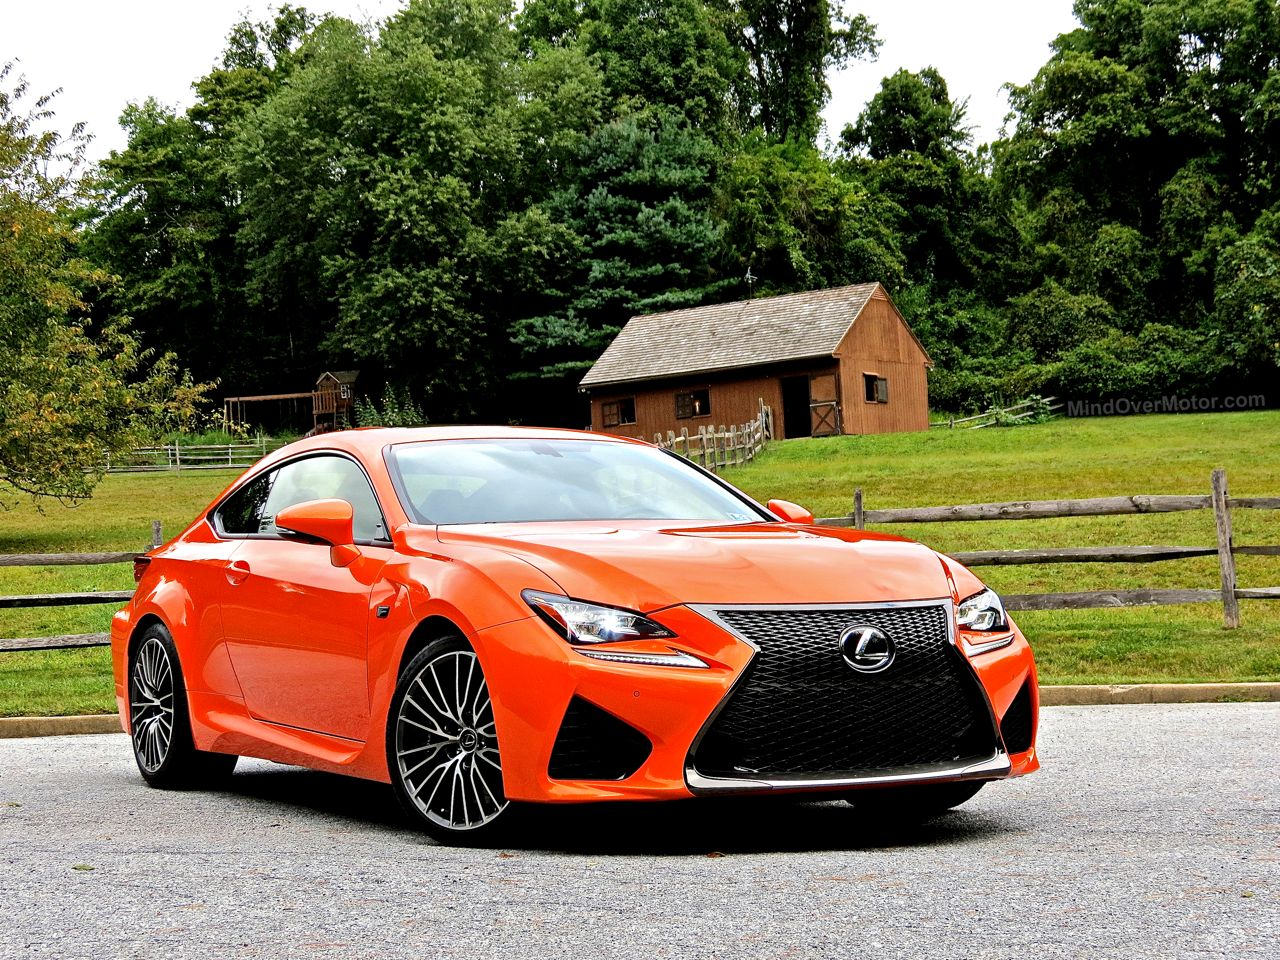 lexus rc f review the best gt car for the money mind over motor. Black Bedroom Furniture Sets. Home Design Ideas